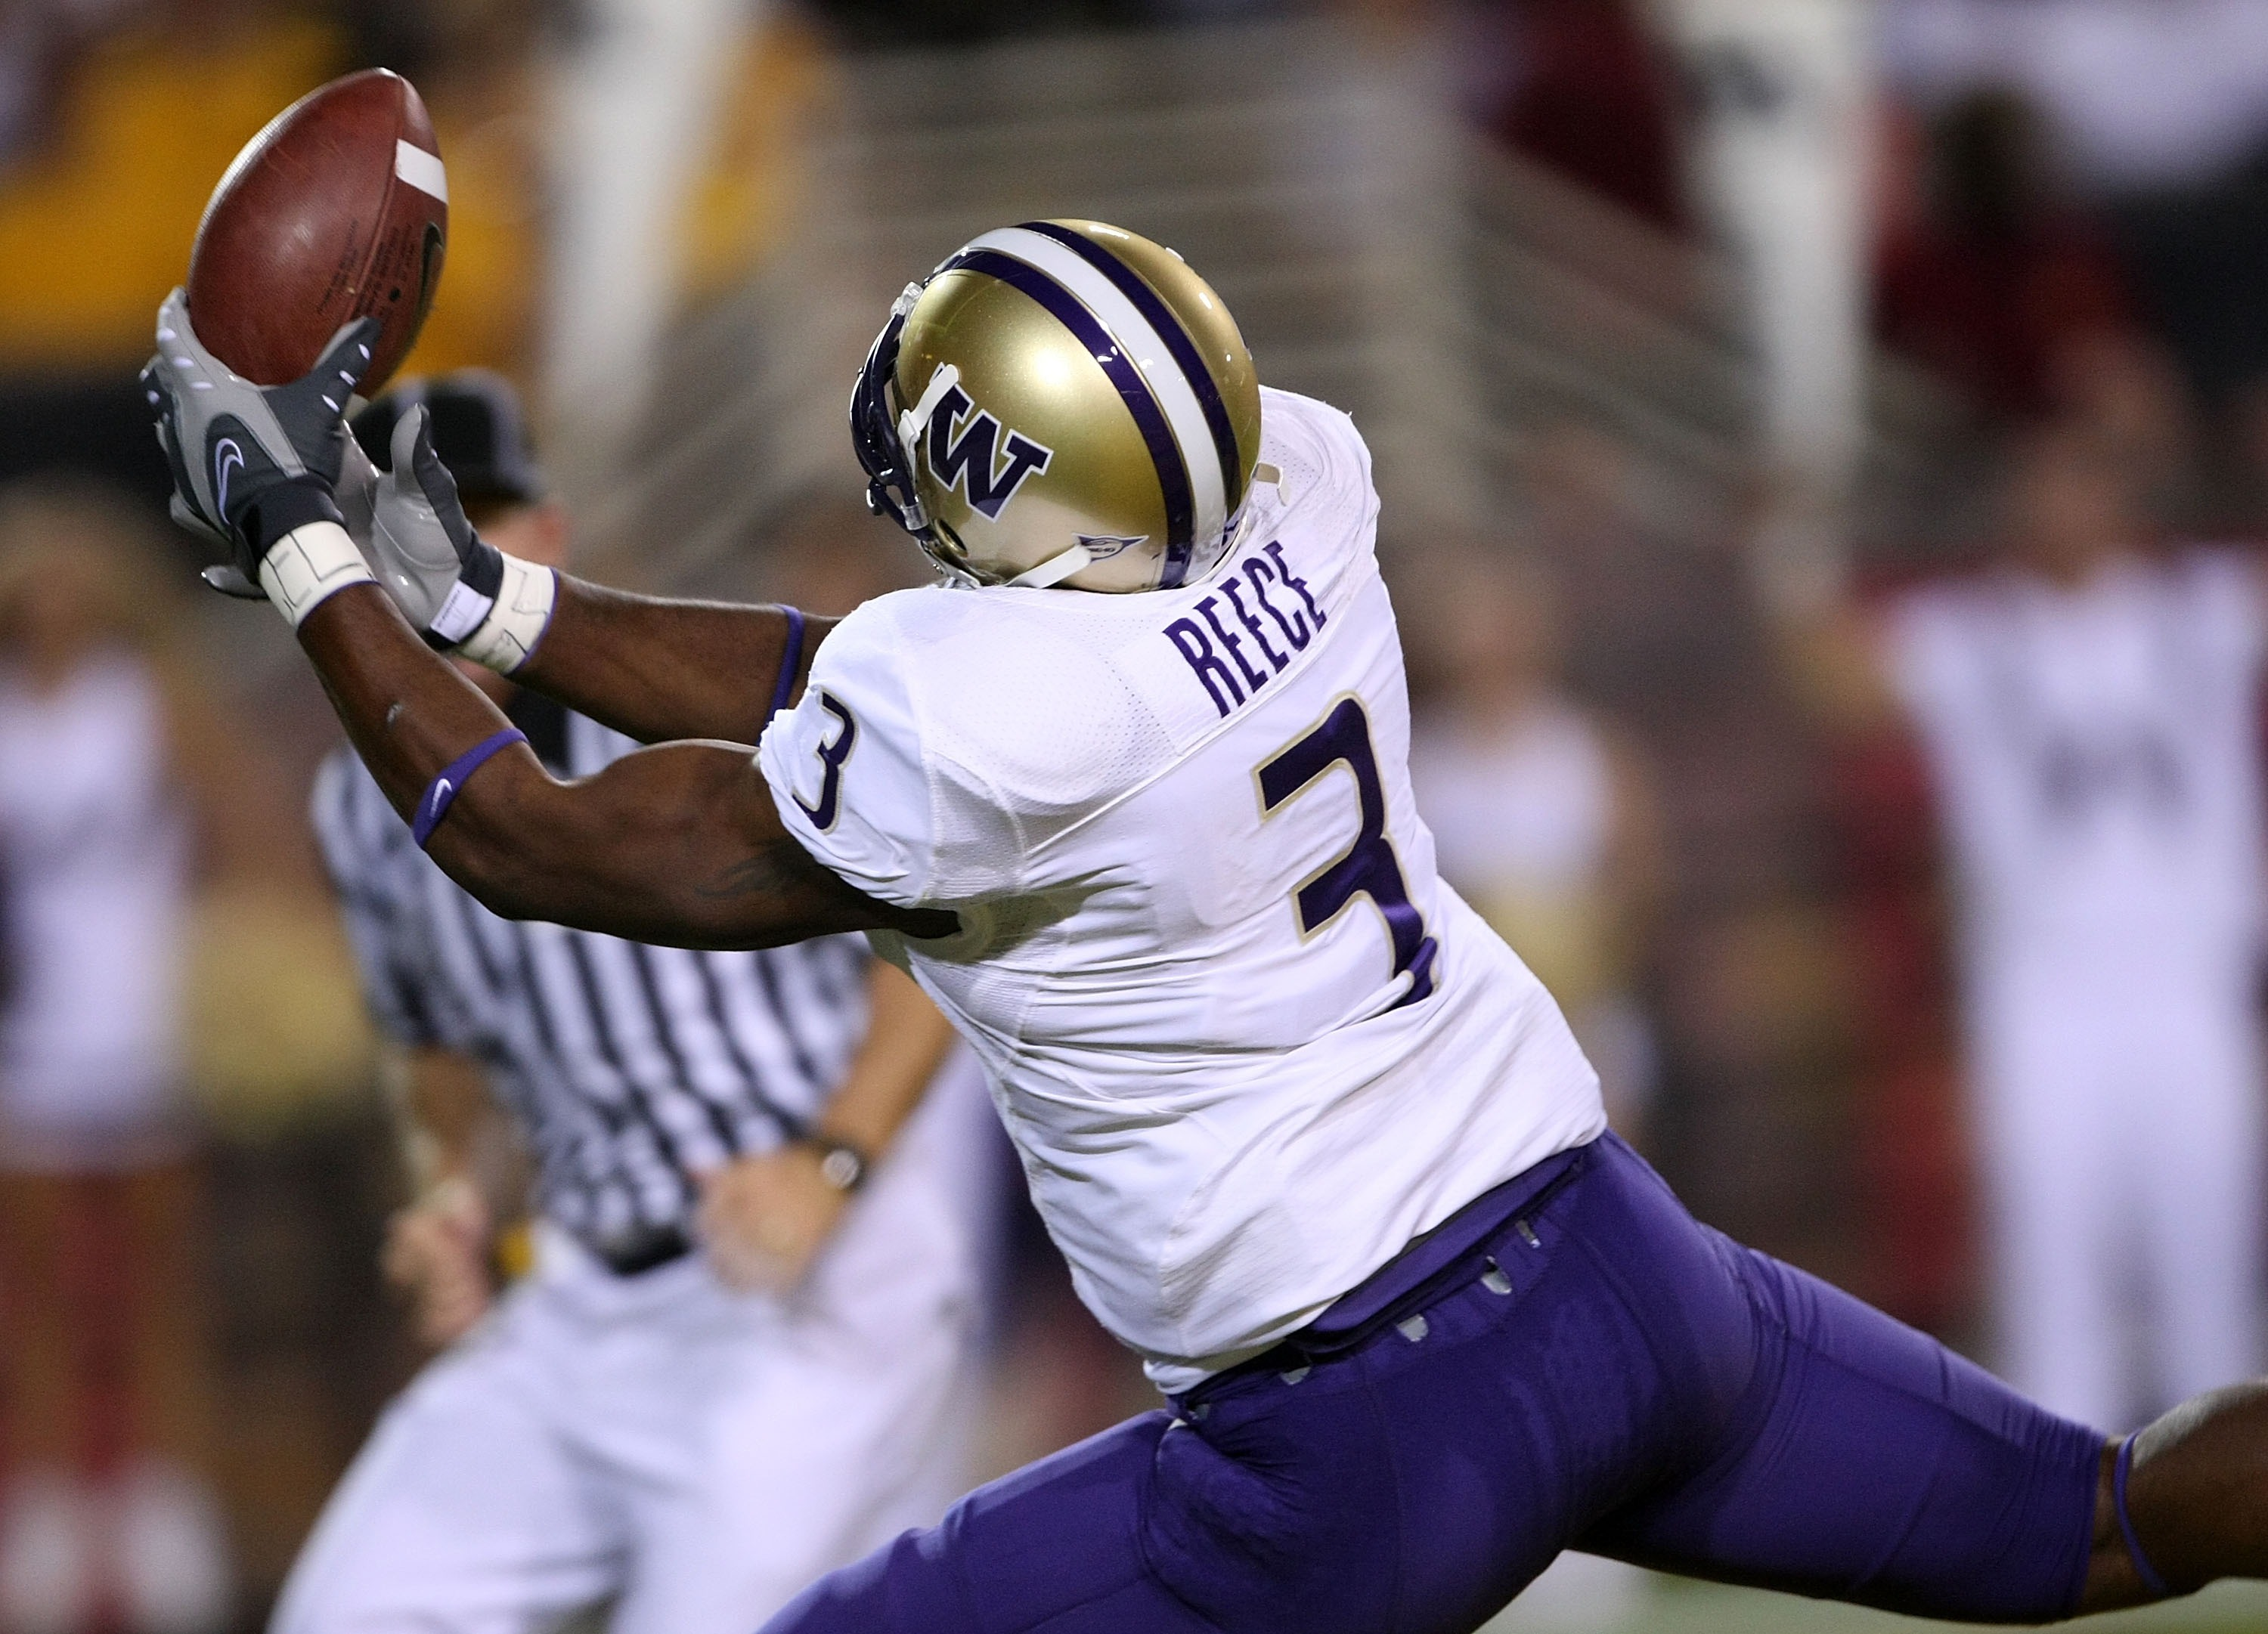 TEMPE, AZ - OCTOBER 13:  Wide receiver Marcel Reece #3 of the Washington Huskies reaches to make a 36 yard touchdown catch in the end zone against the Arizona State Sun Devils at Sun Devil Stadium October 13, 2007 in Tempe, Arizona.  (Photo by Stephen Dun